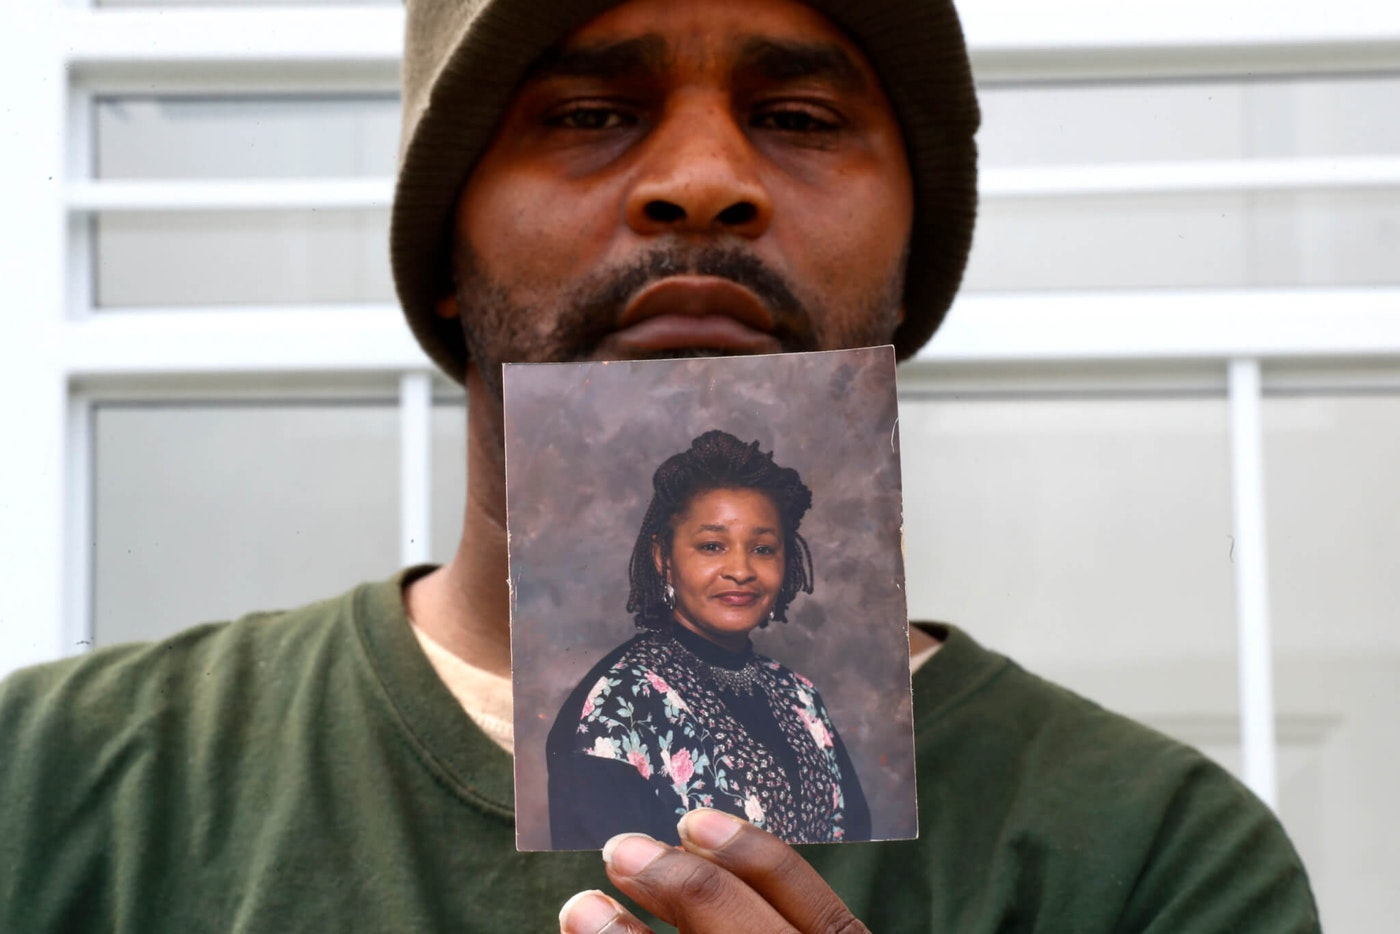 Jamon Jordan poses with a photo of his mother, Jacquelynne Jordan, in Detroit, Friday, April 24, 2020. Jamon Jordan could not mourn his mother in the traditional way. At Jacquelynne Jordan's memorial in early April, there were just seven people. No hugs. No traditional dinner where family members could gather to honor the 66-year-old matriarch's memory after she died from the new coronavirus. (AP Photo/Paul Sancya)